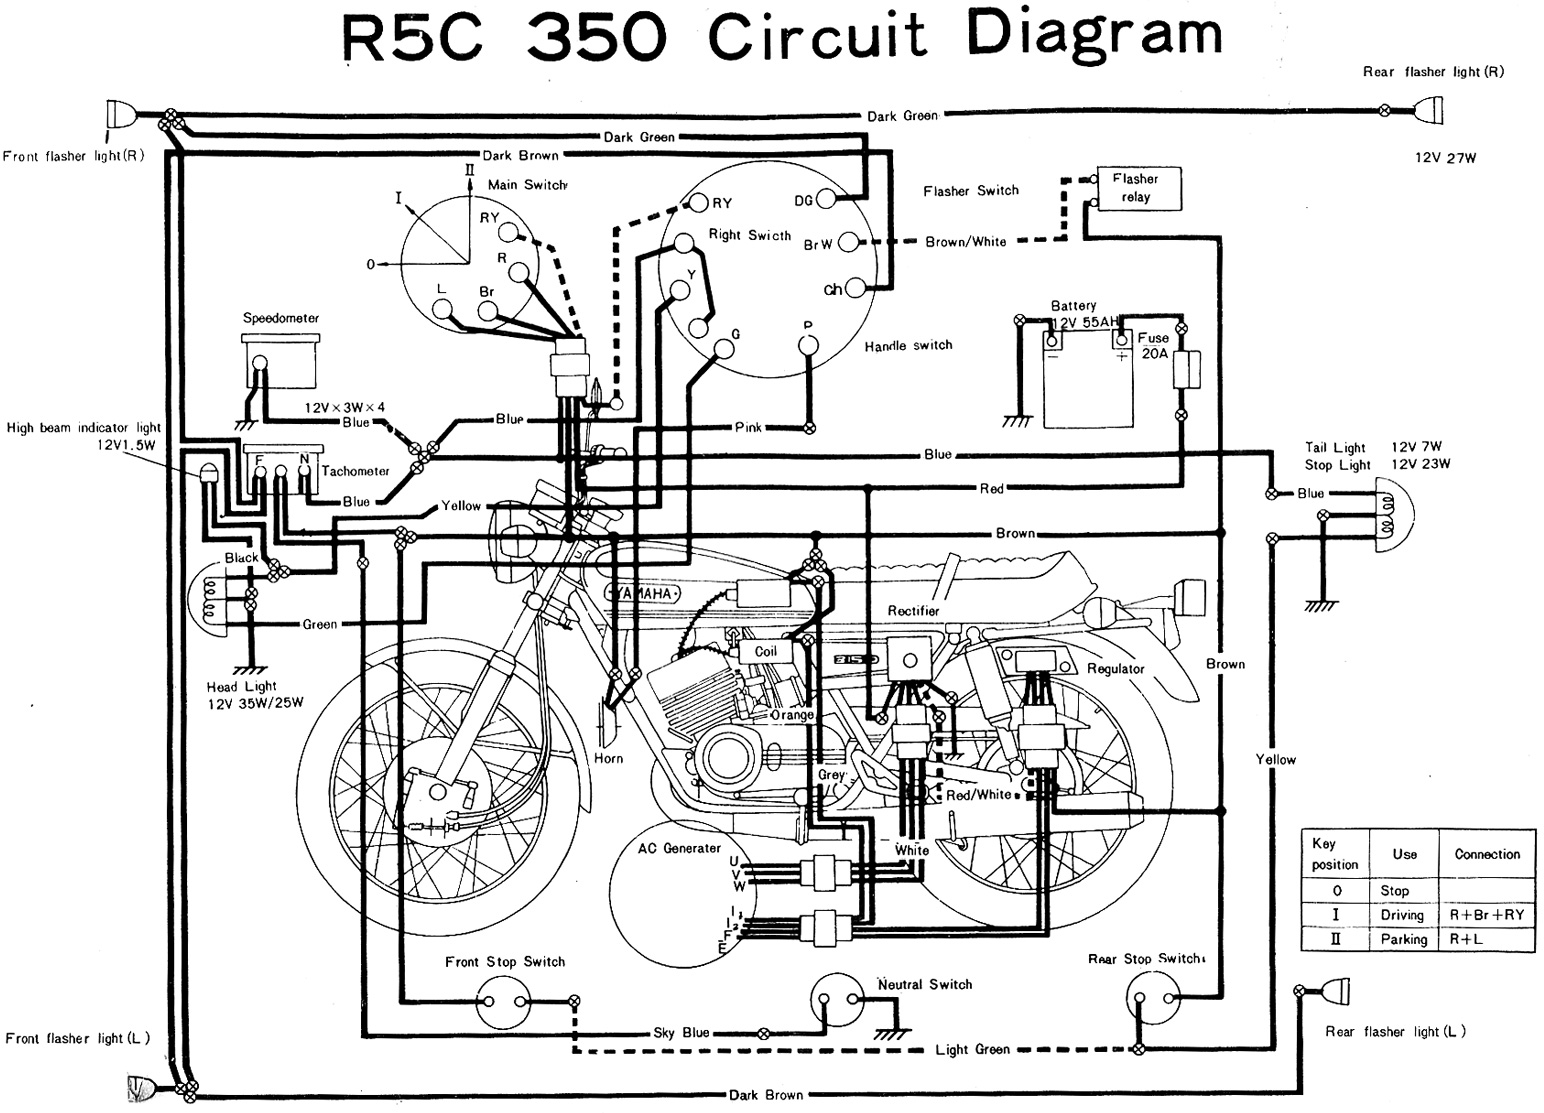 Yamaha RD350 R5C Wiring Diagram diagram of wiring basic wiring diagram \u2022 wiring diagrams j  at gsmportal.co